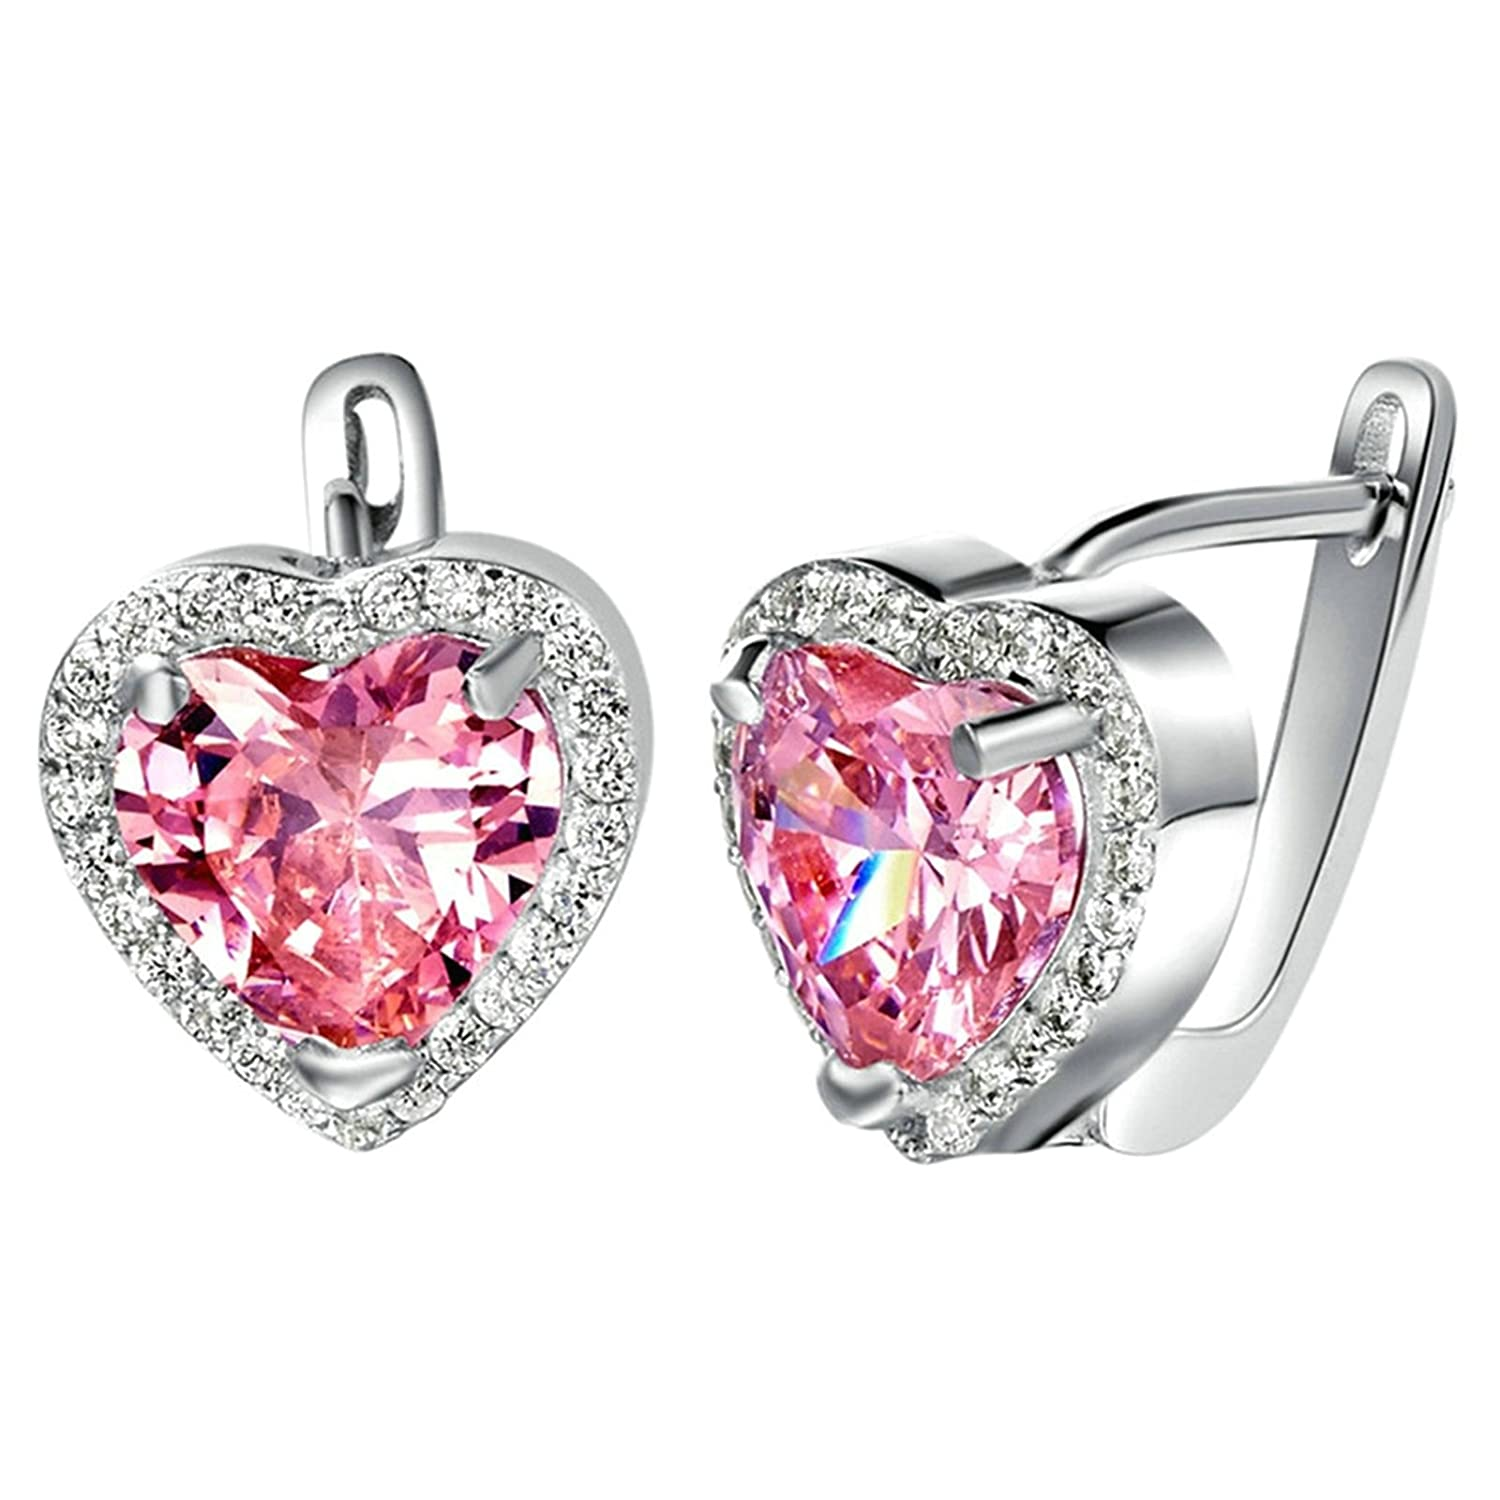 Bishilin Jewelry Sets Women Silver Plated CZ Heart Crystal Ring Pendant Necklace Earrings Set Size L 1//2